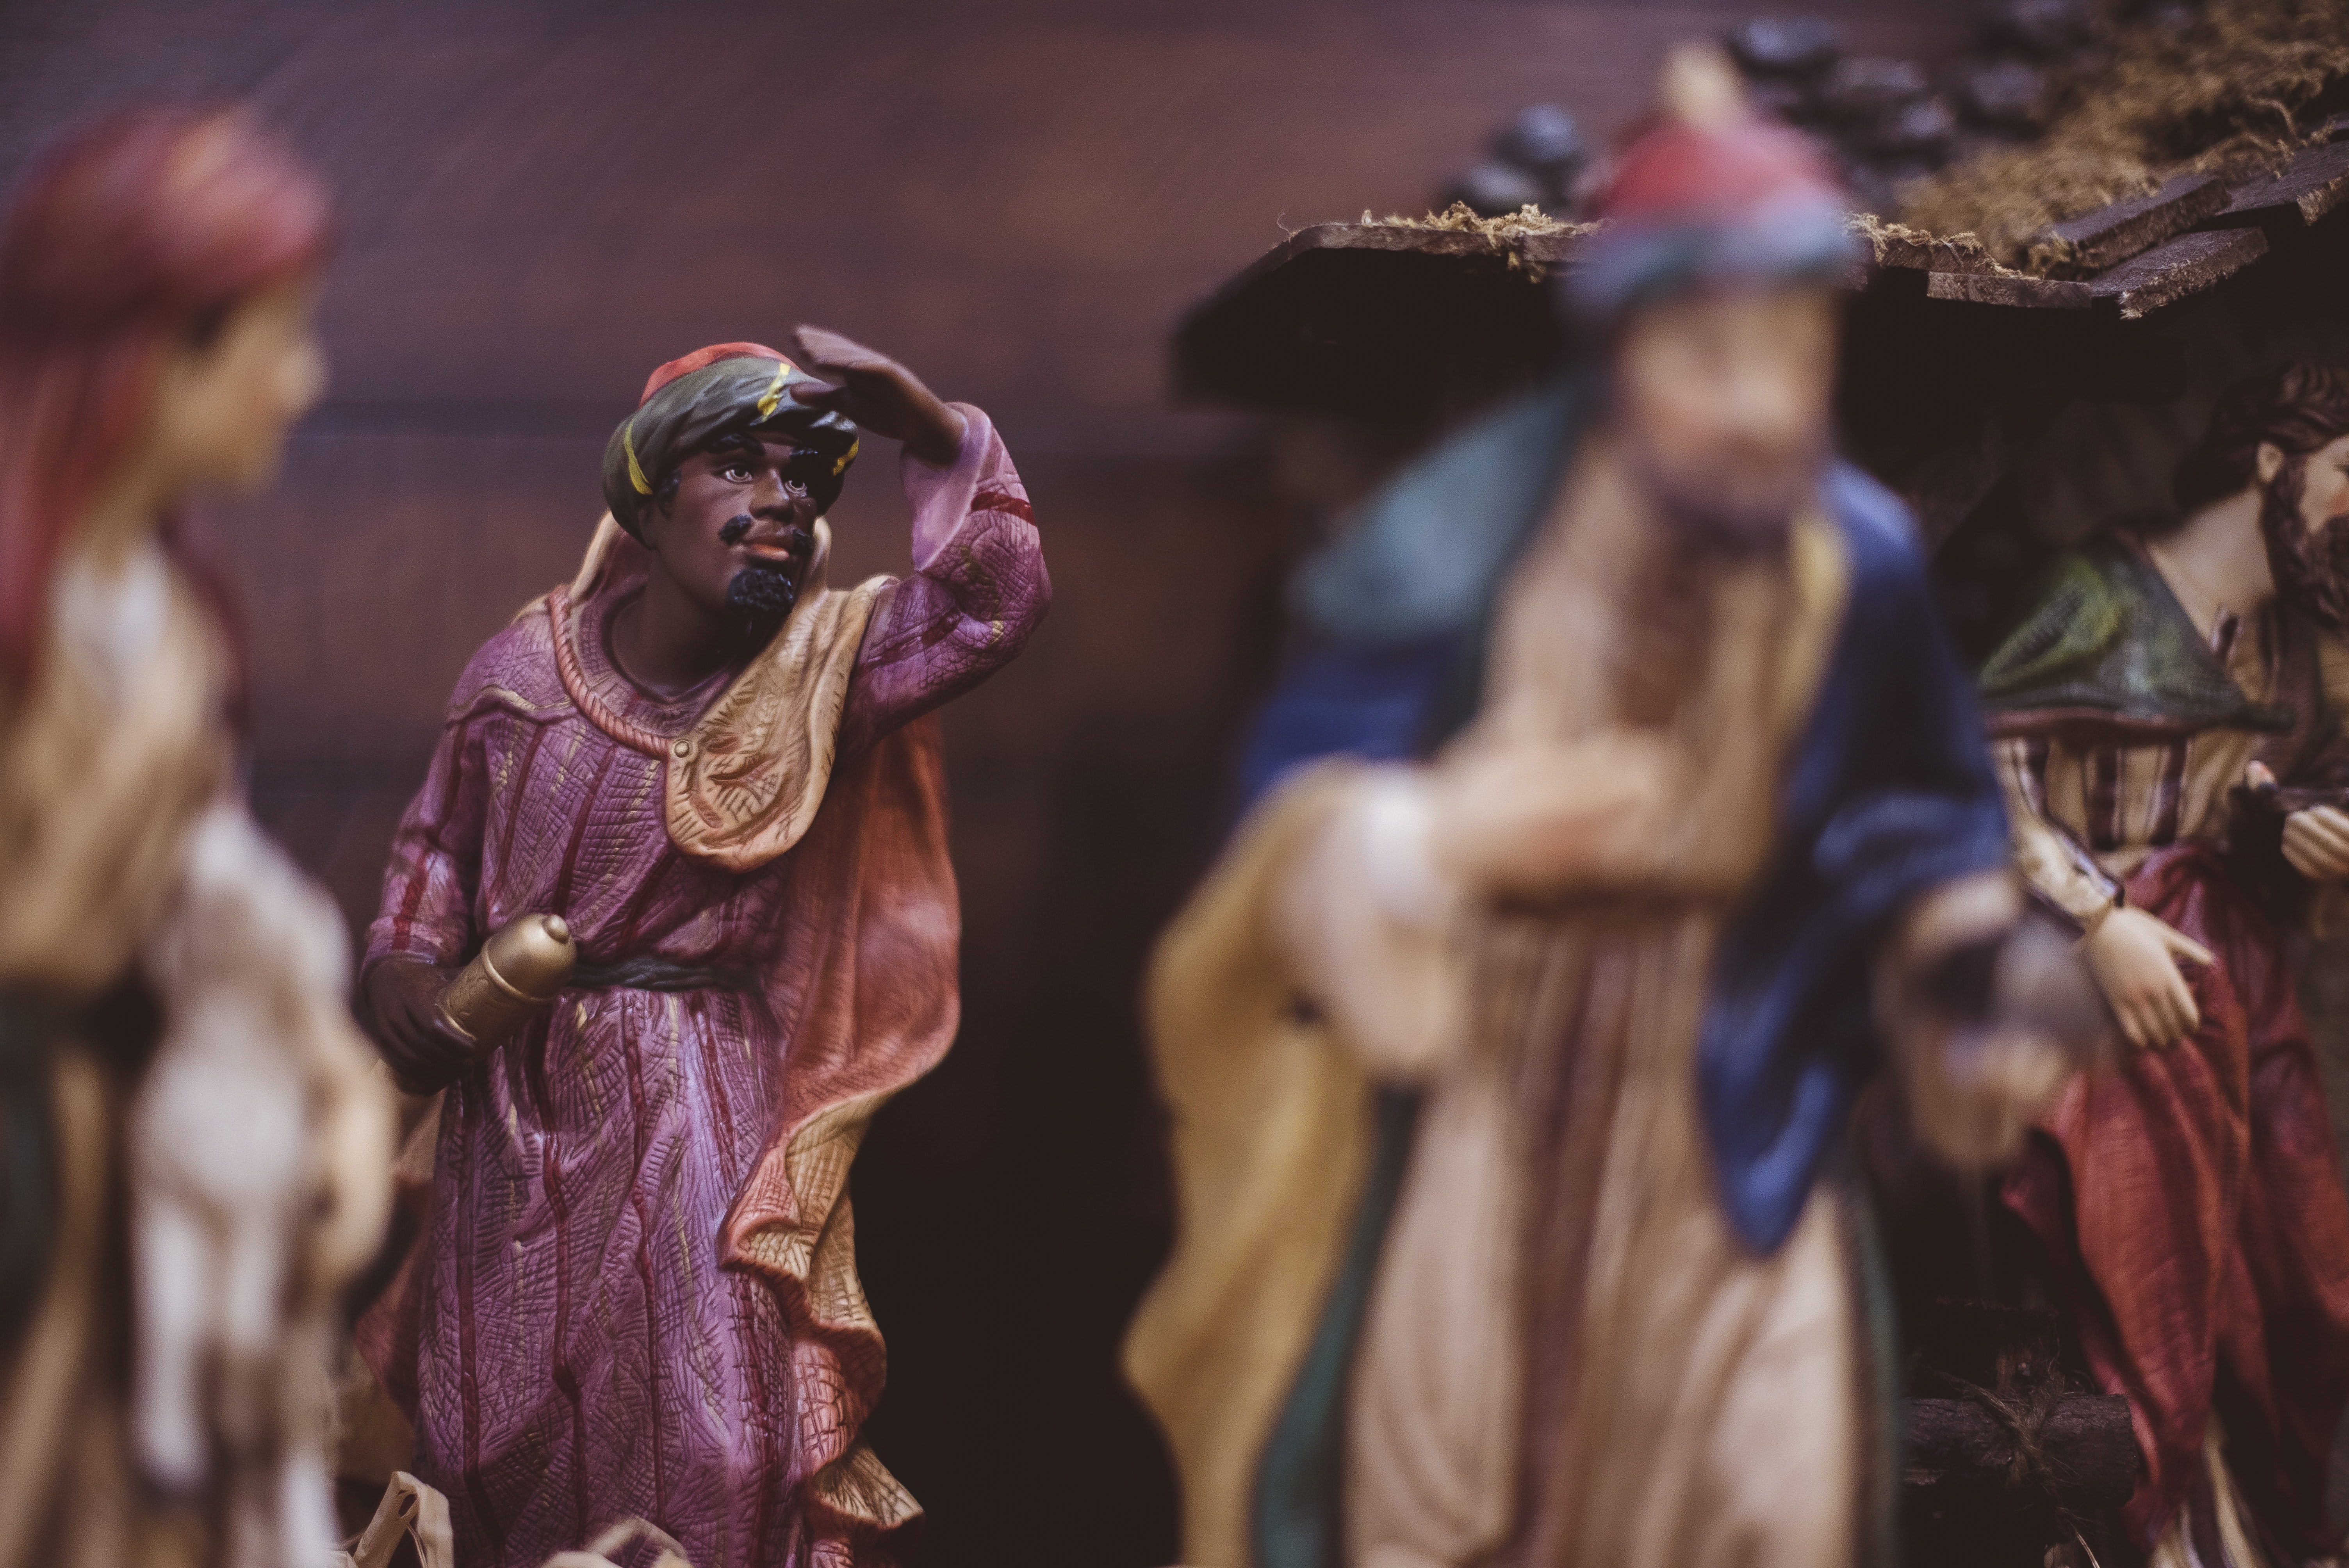 Out-of-focus Christmas decorations with wise men in a religious manger scene